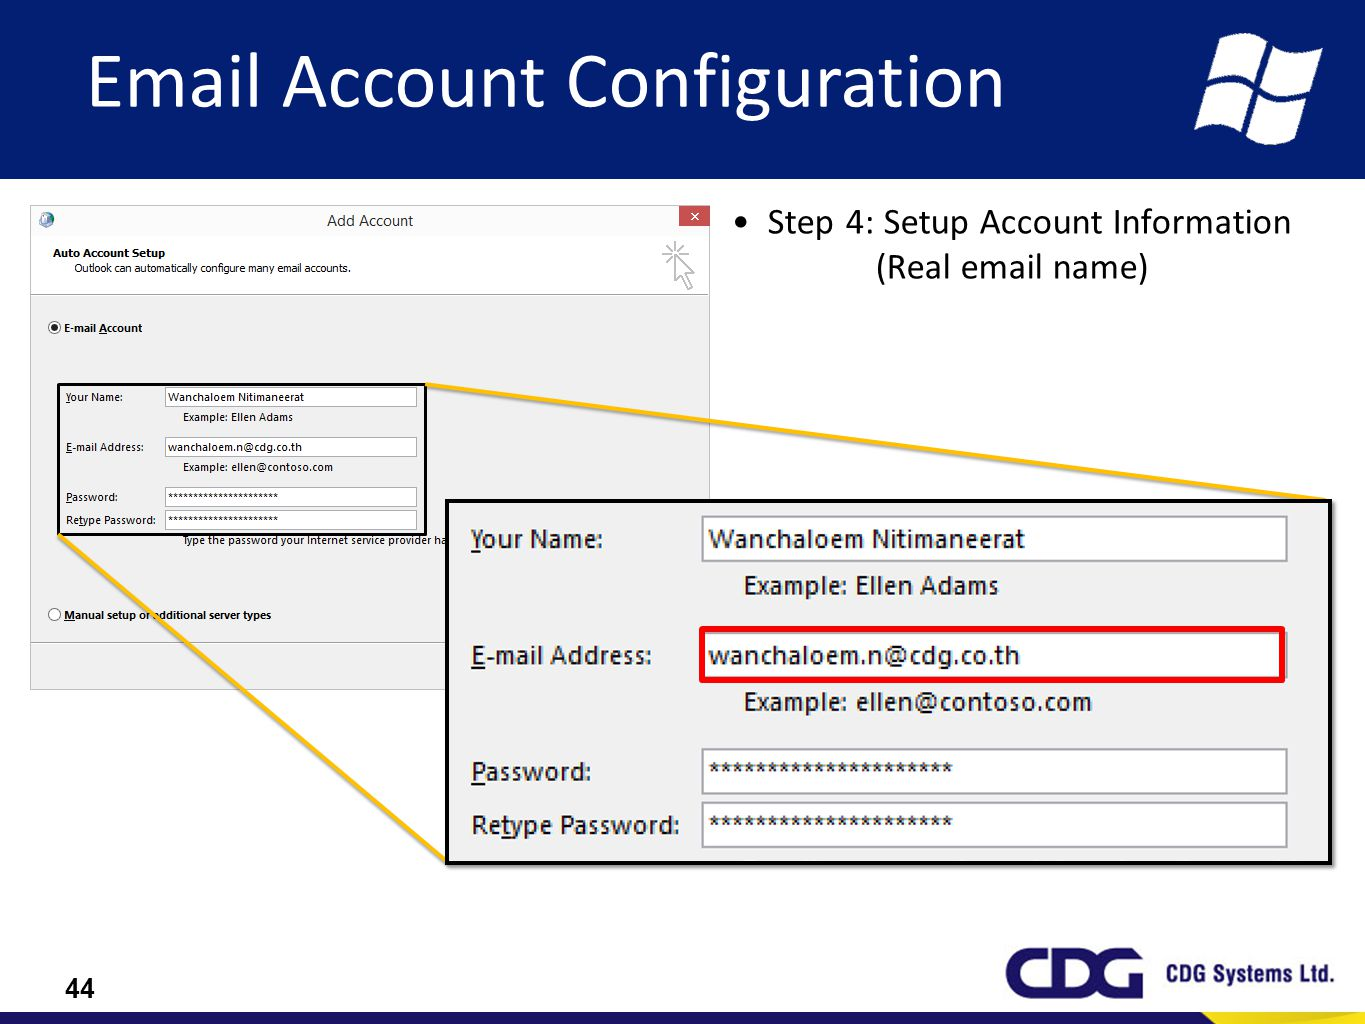 Step 4: Setup Account Information